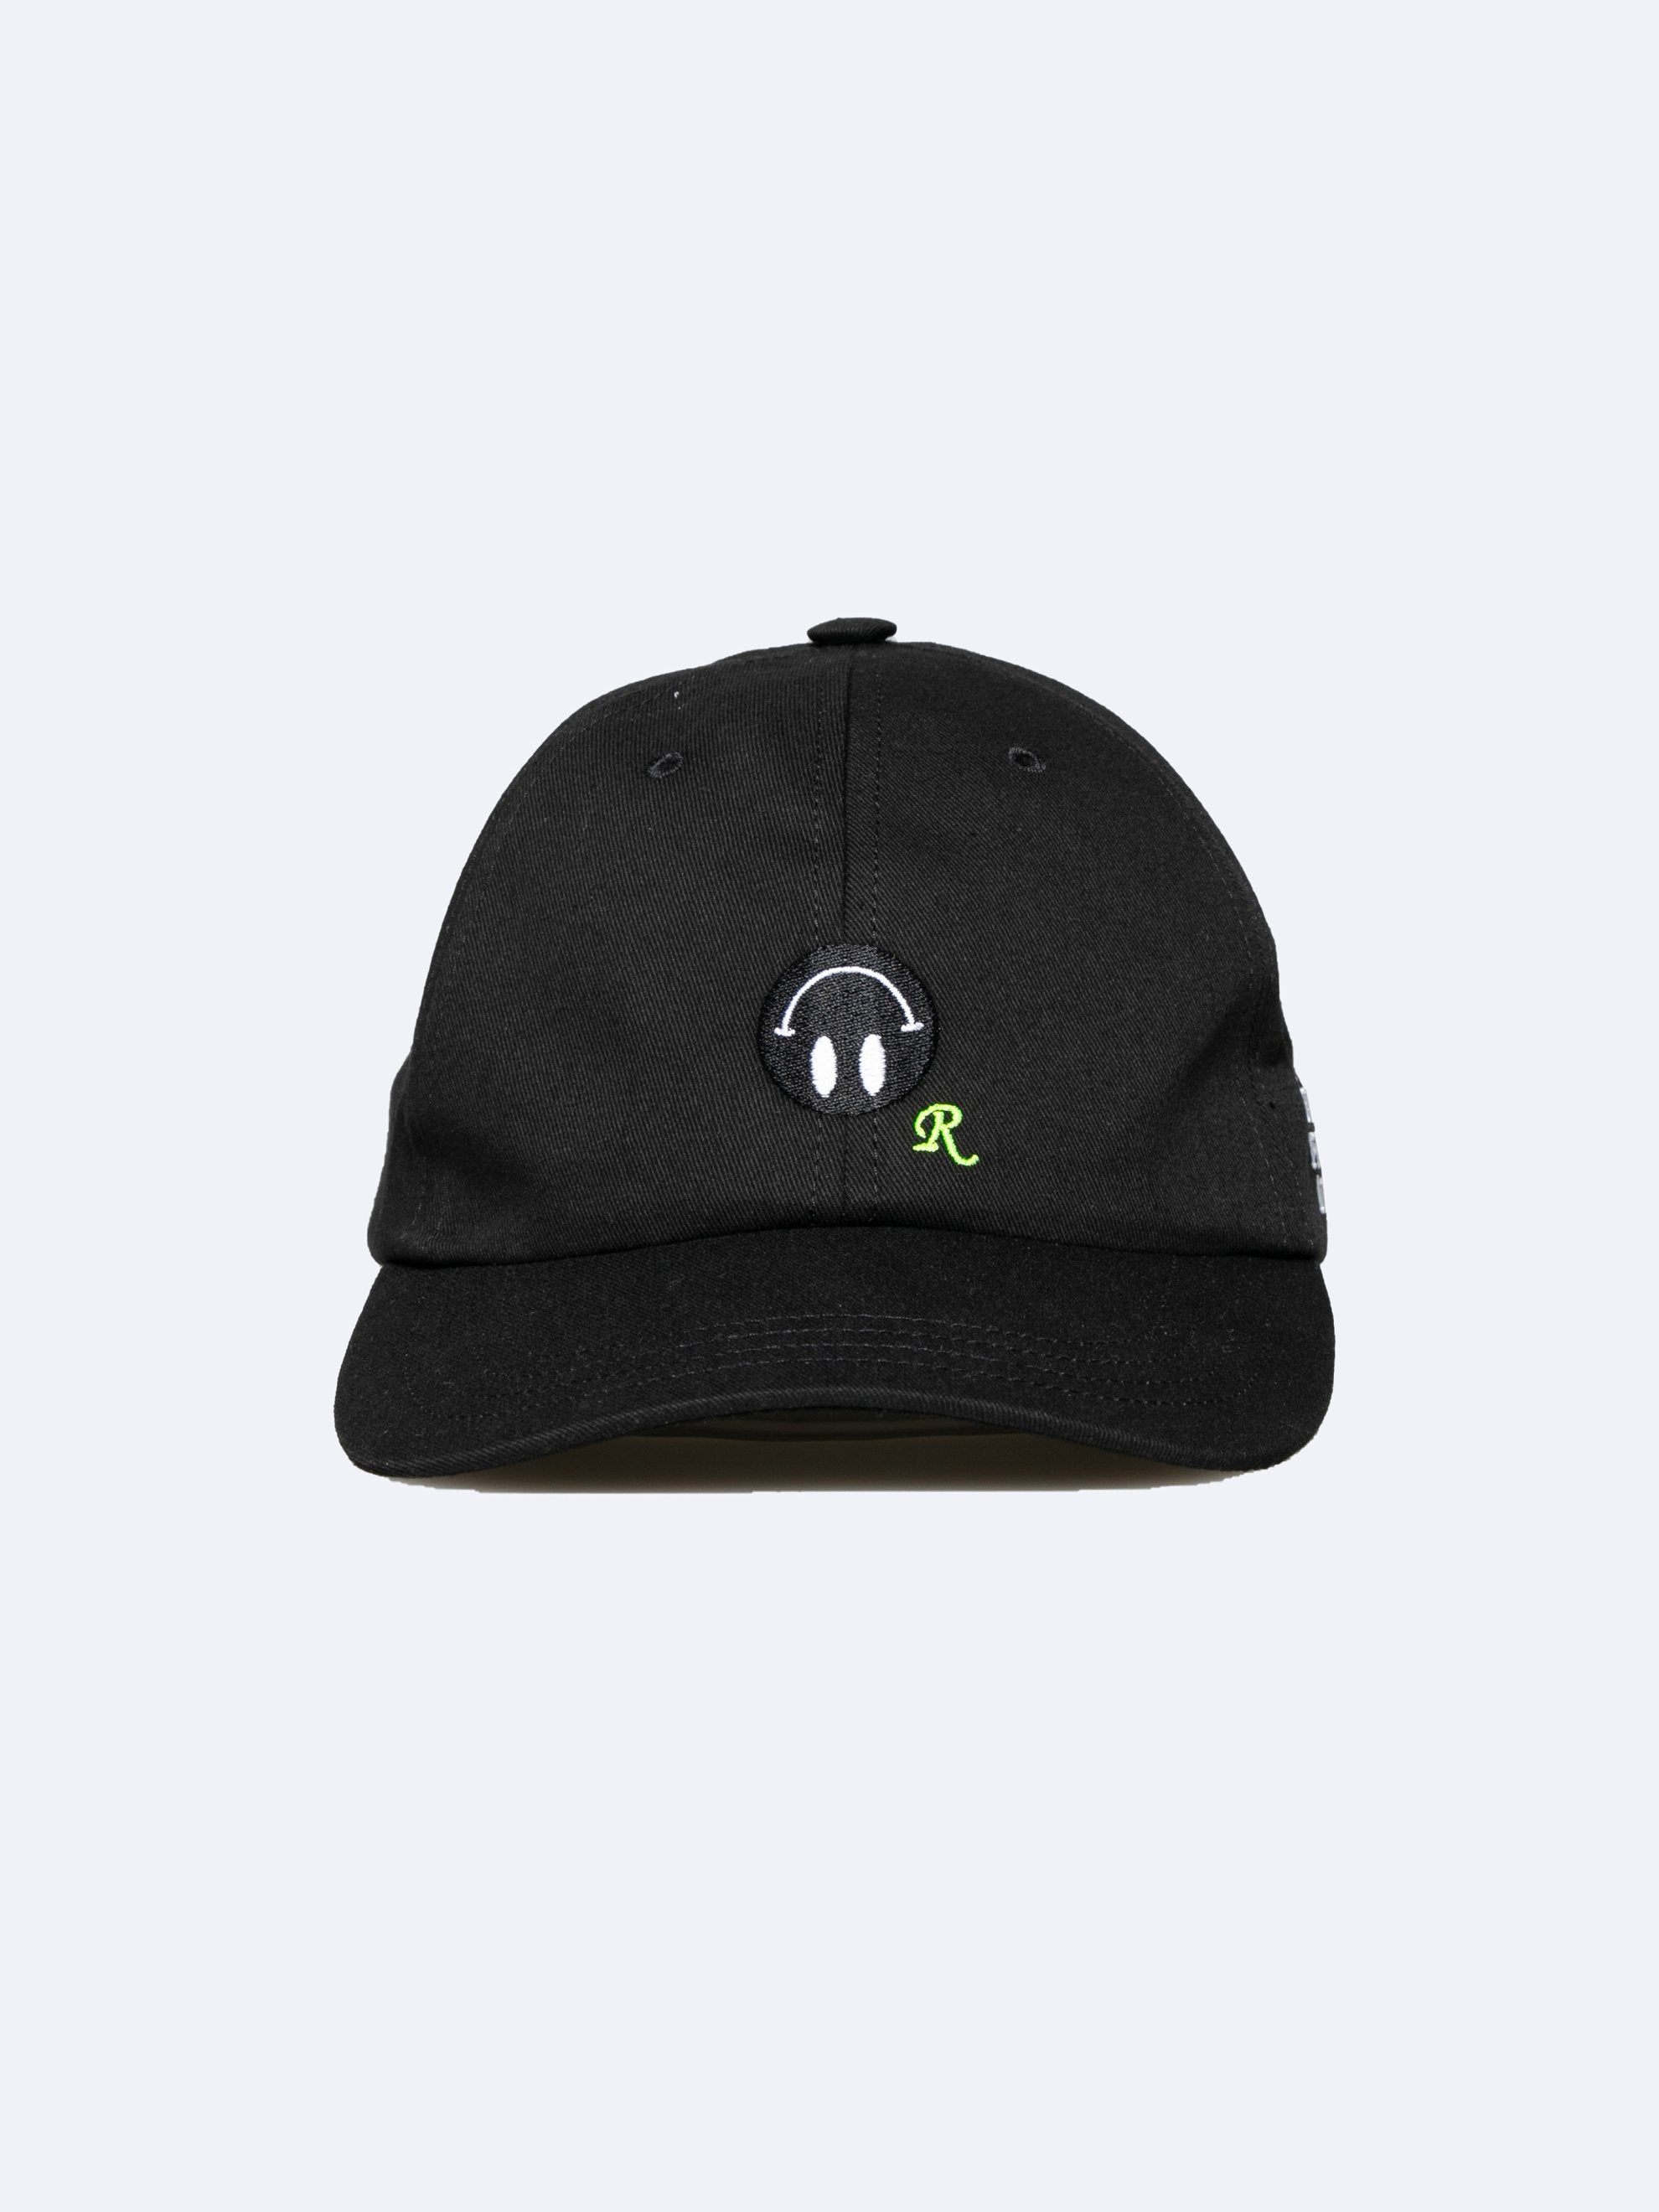 Black Embroidered Cap 1